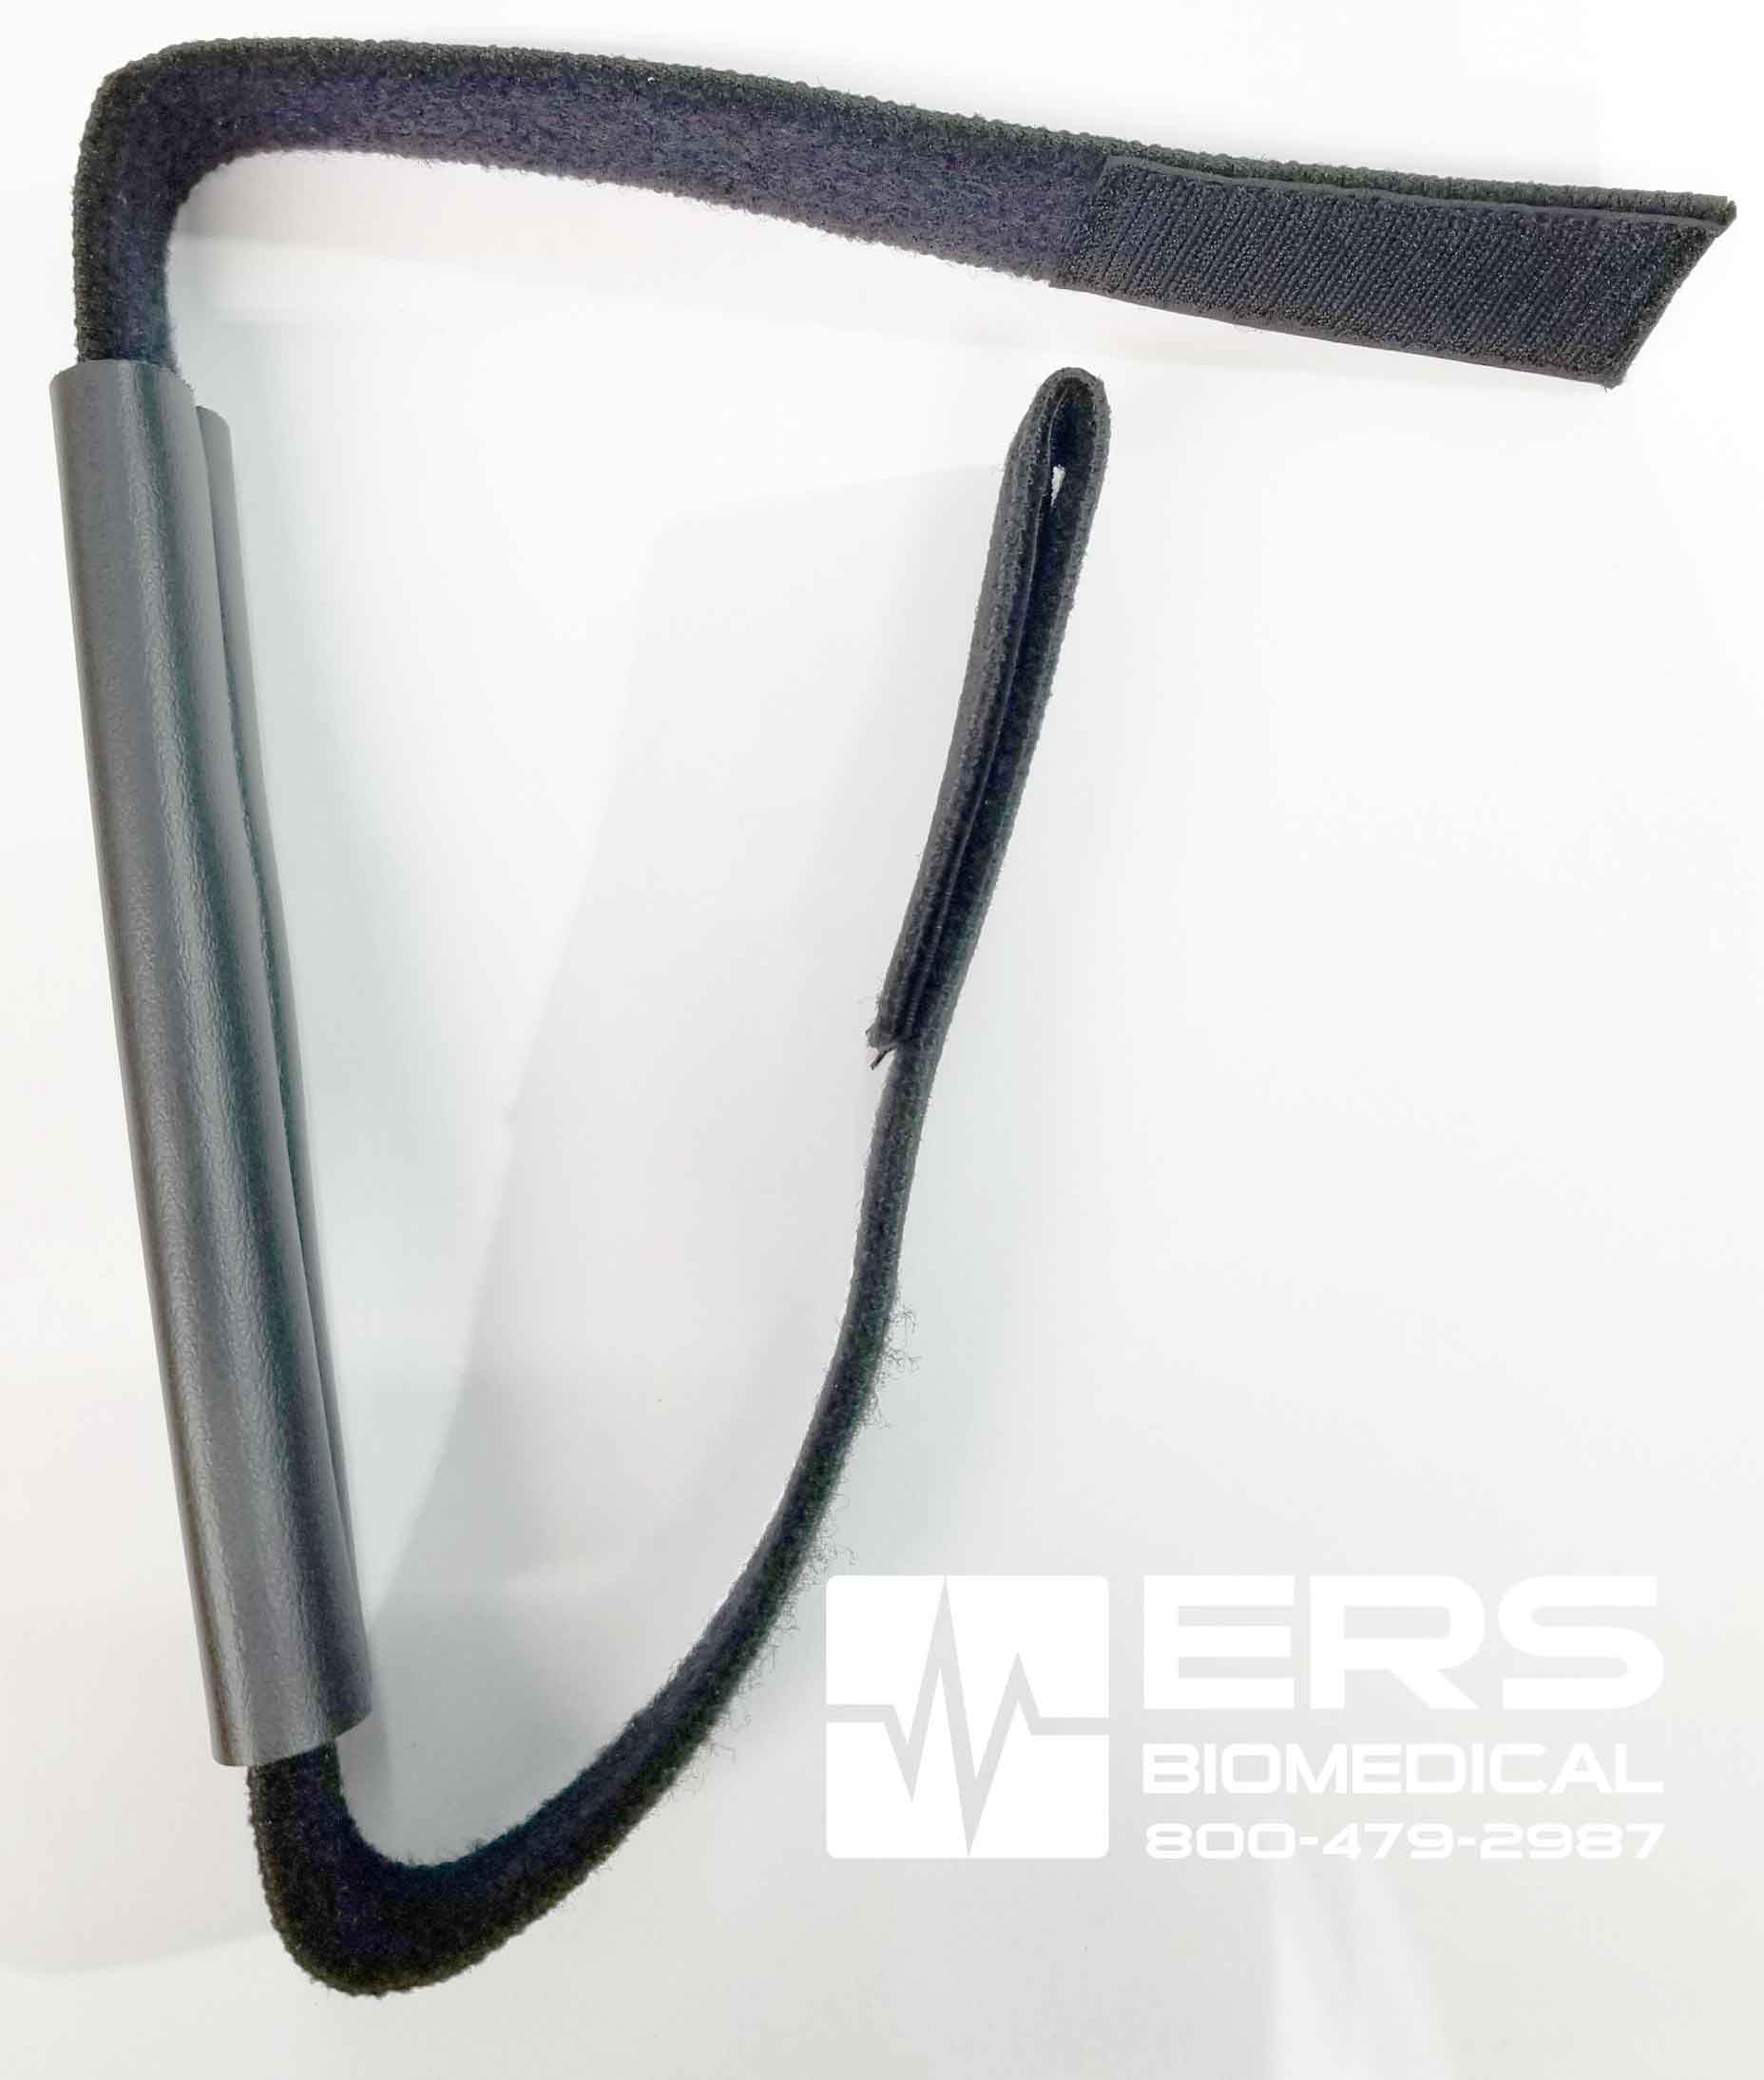 Saunders Cervical Replacement Strap 12 0530 Sp